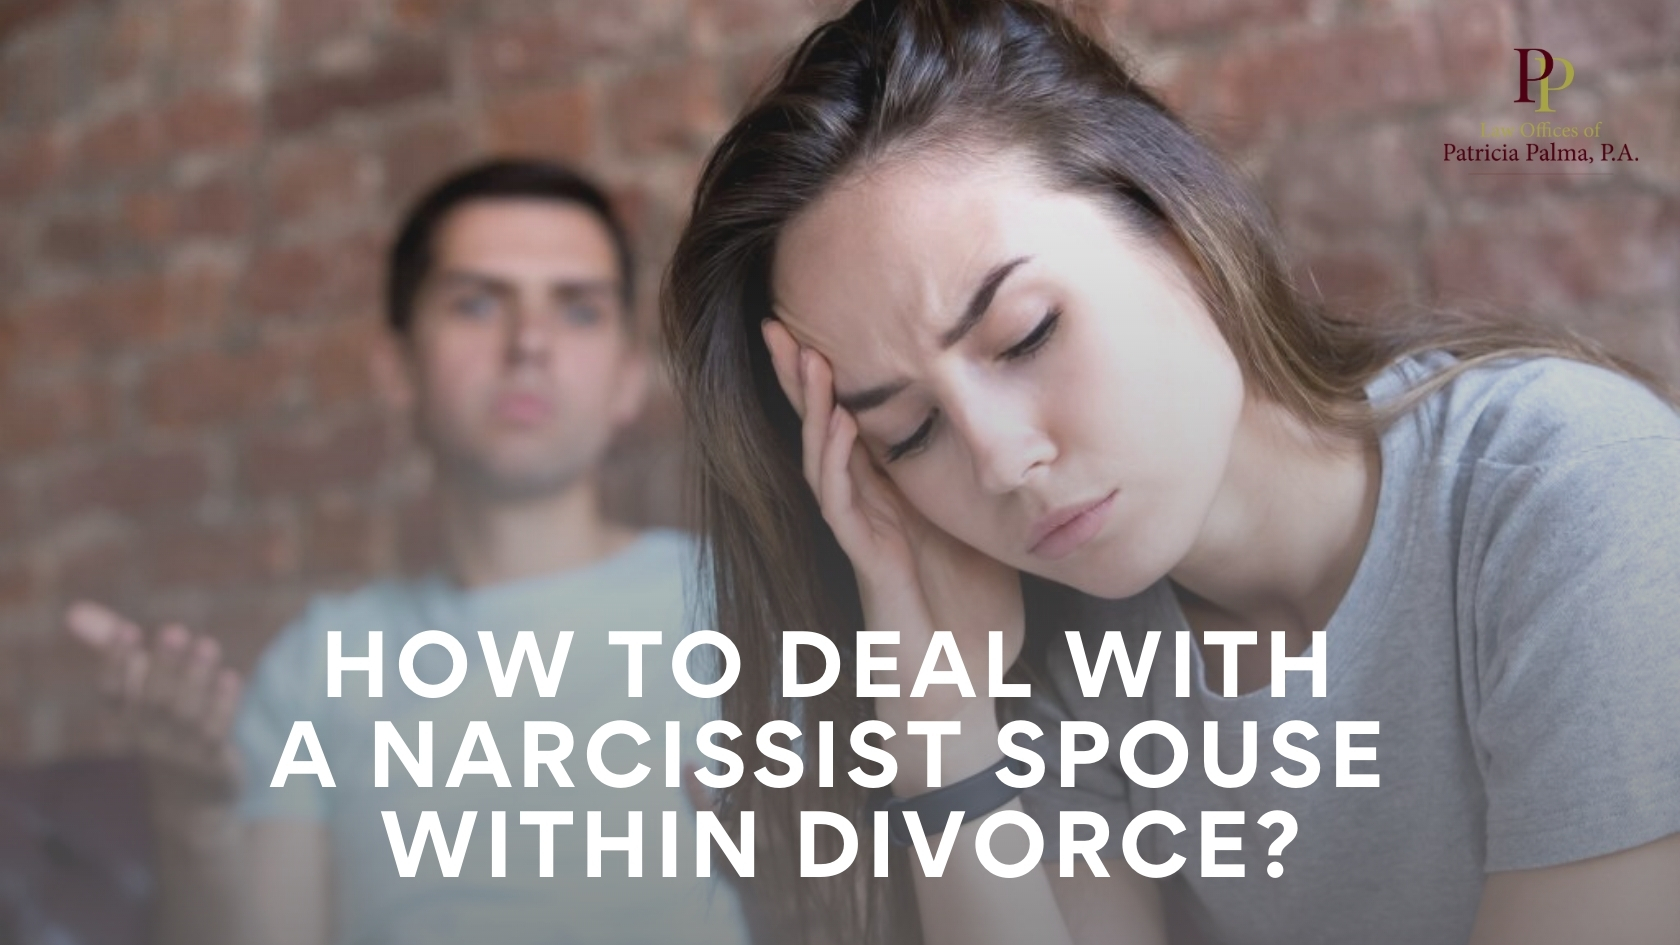 Narcissistic personality disorder spouse